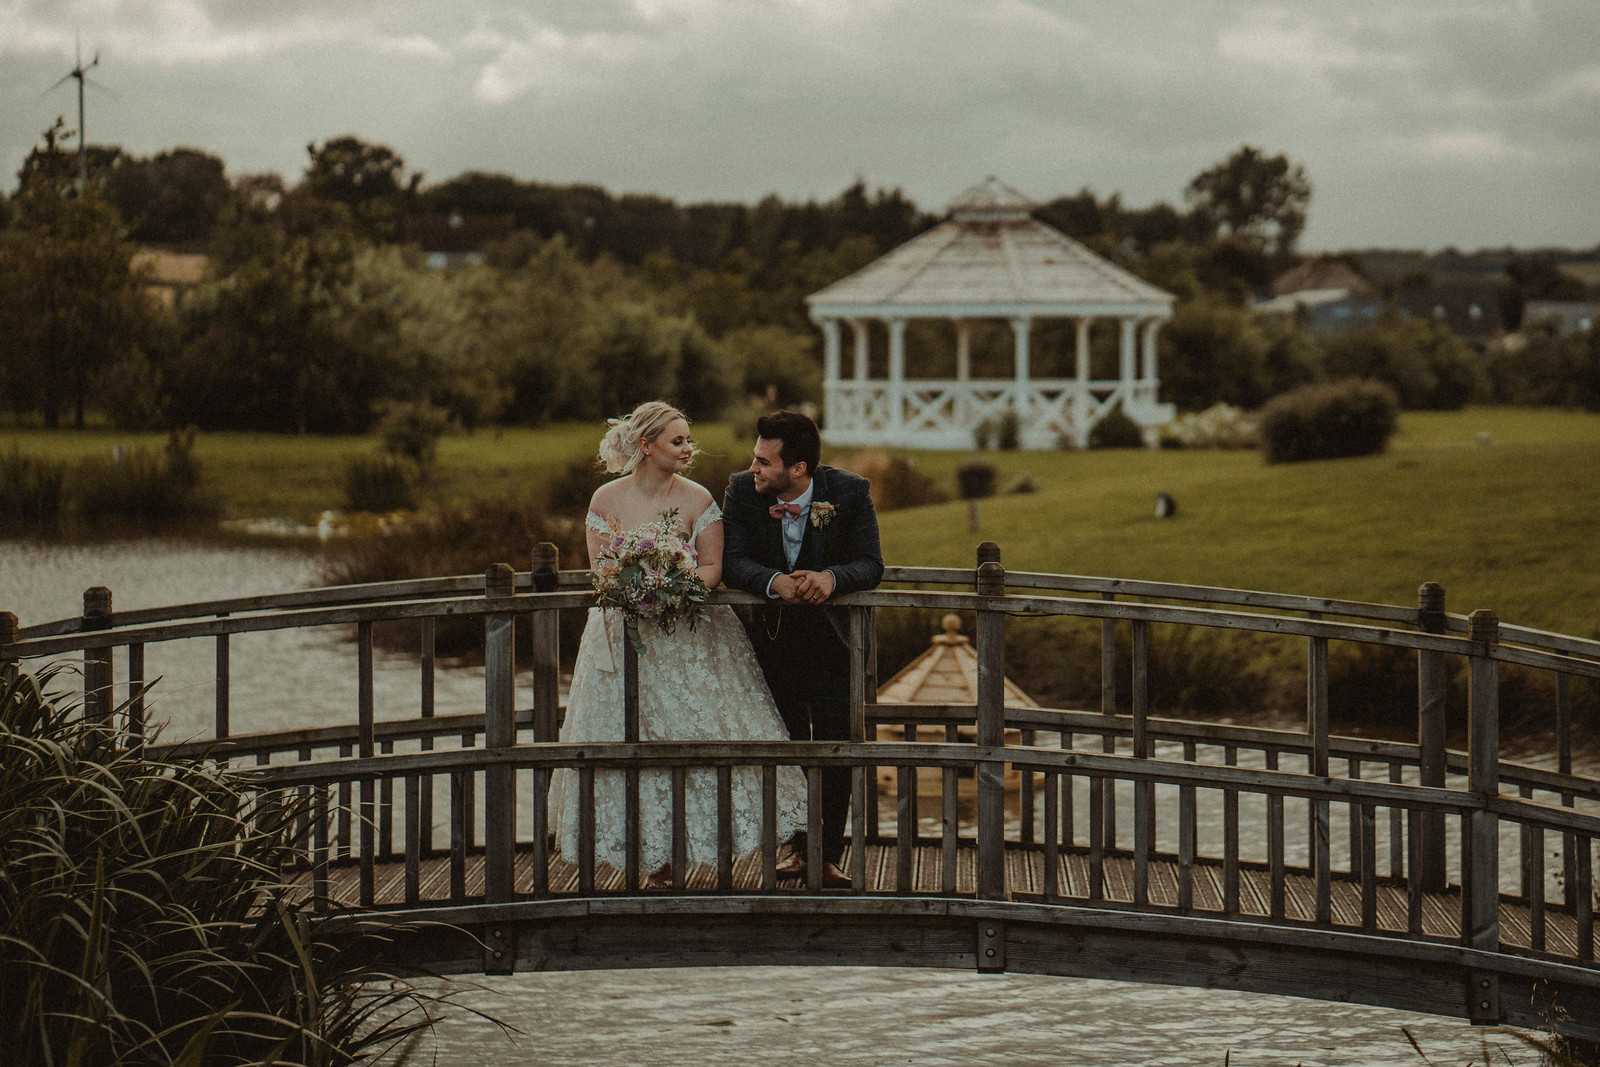 Bride and groom wedding photo surrounded by beauty